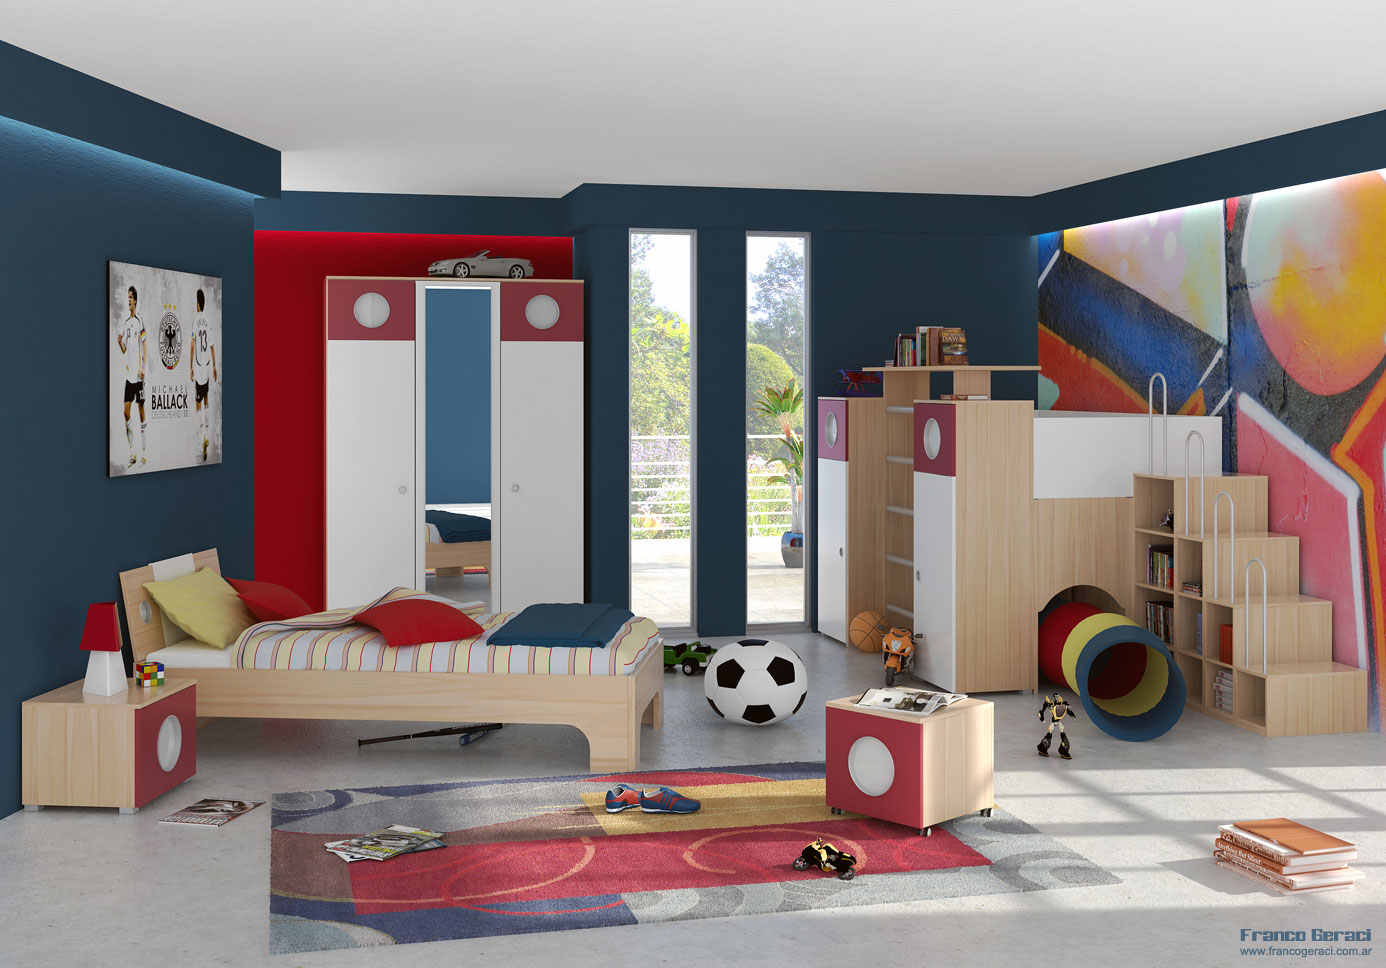 A spacious kids bedroom design ideas interior design ideas Youth bedroom design ideas